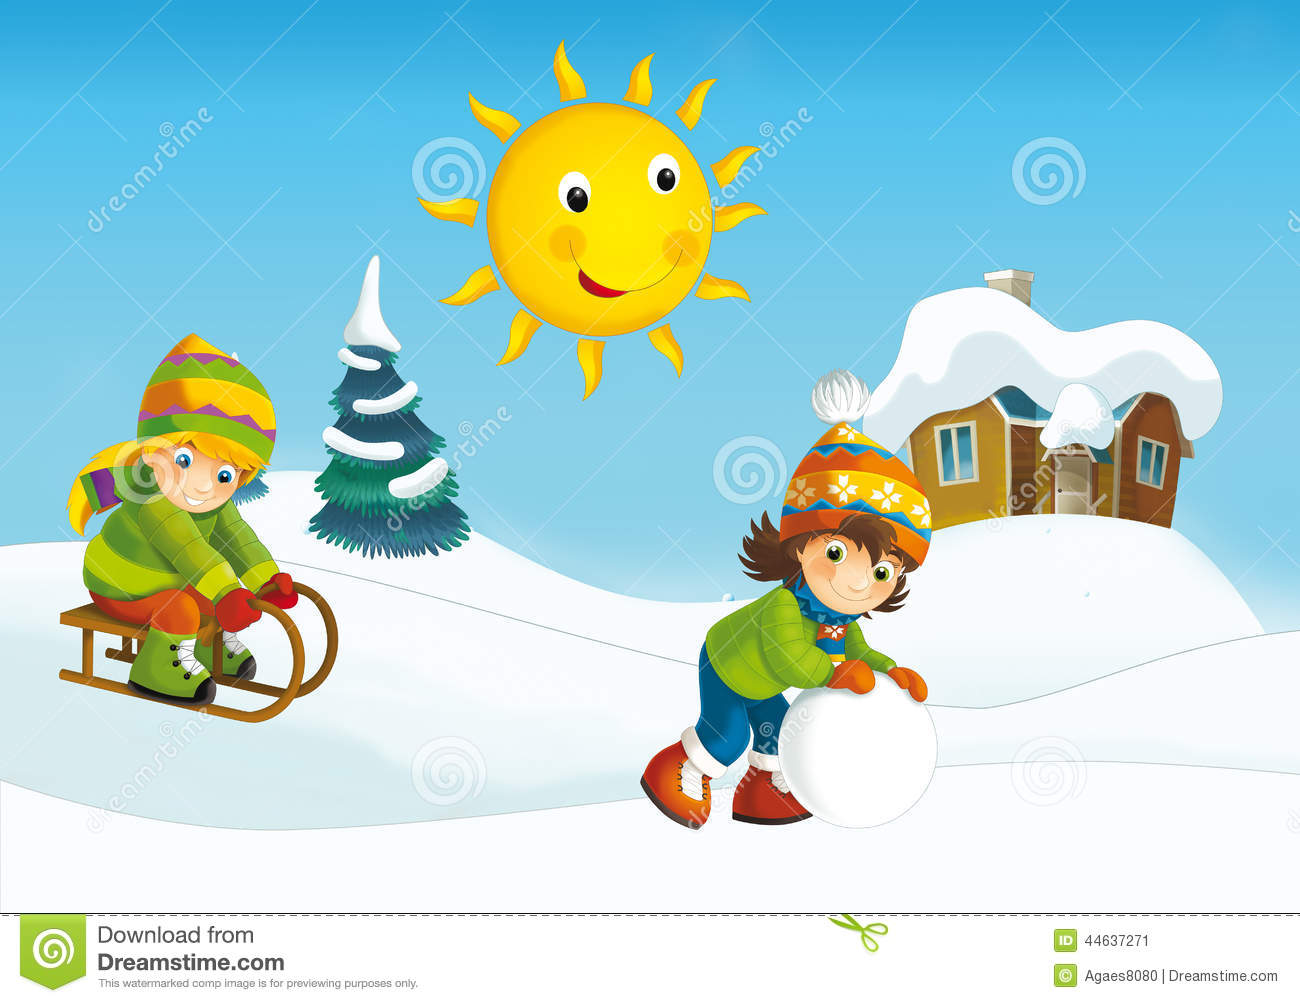 Winter Cartoon Scene Stock Illustration - Image: 44637271